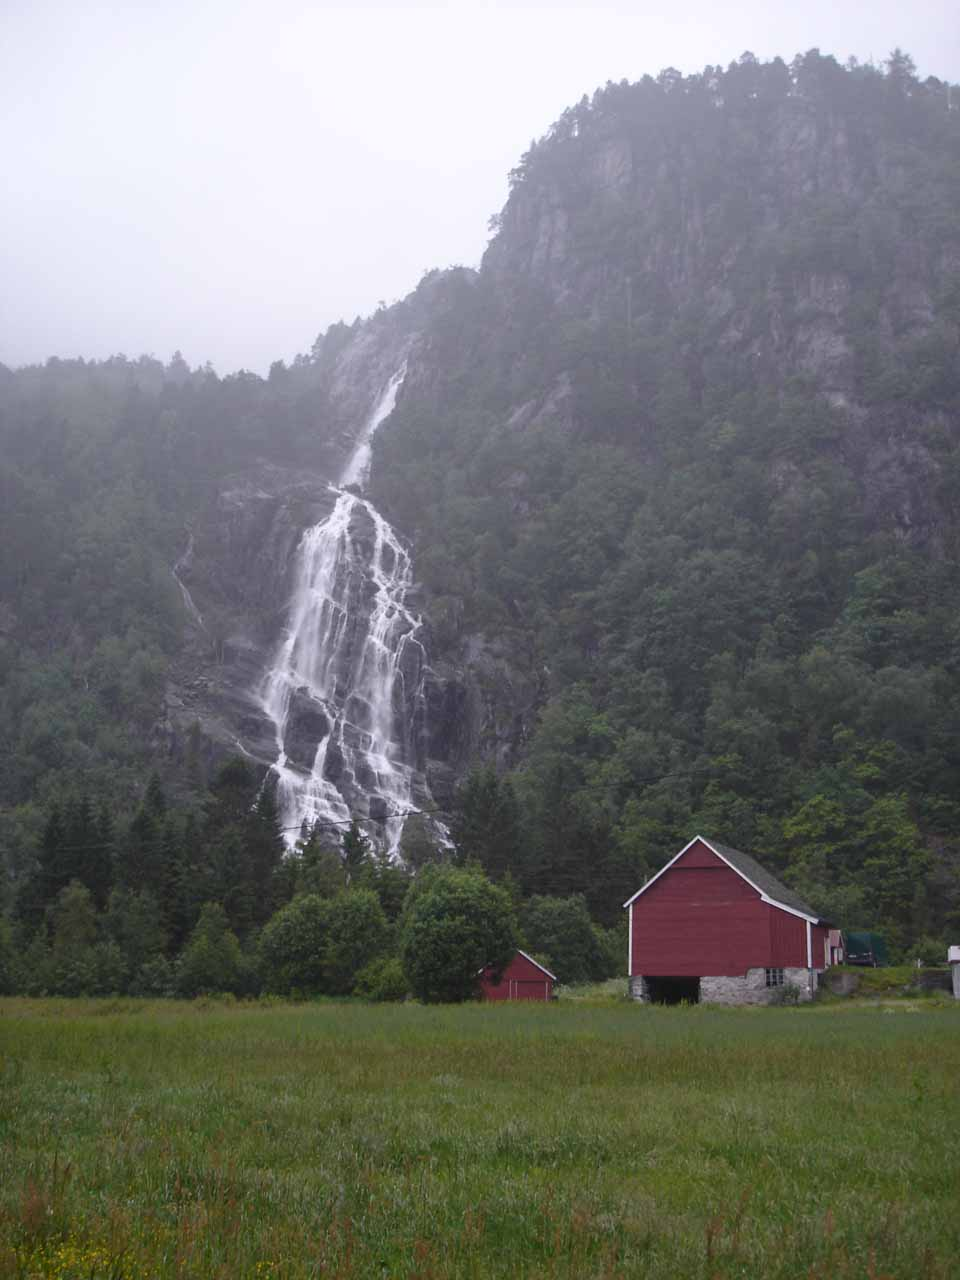 Some red barn fronting a closer look at Kvernhusfossen